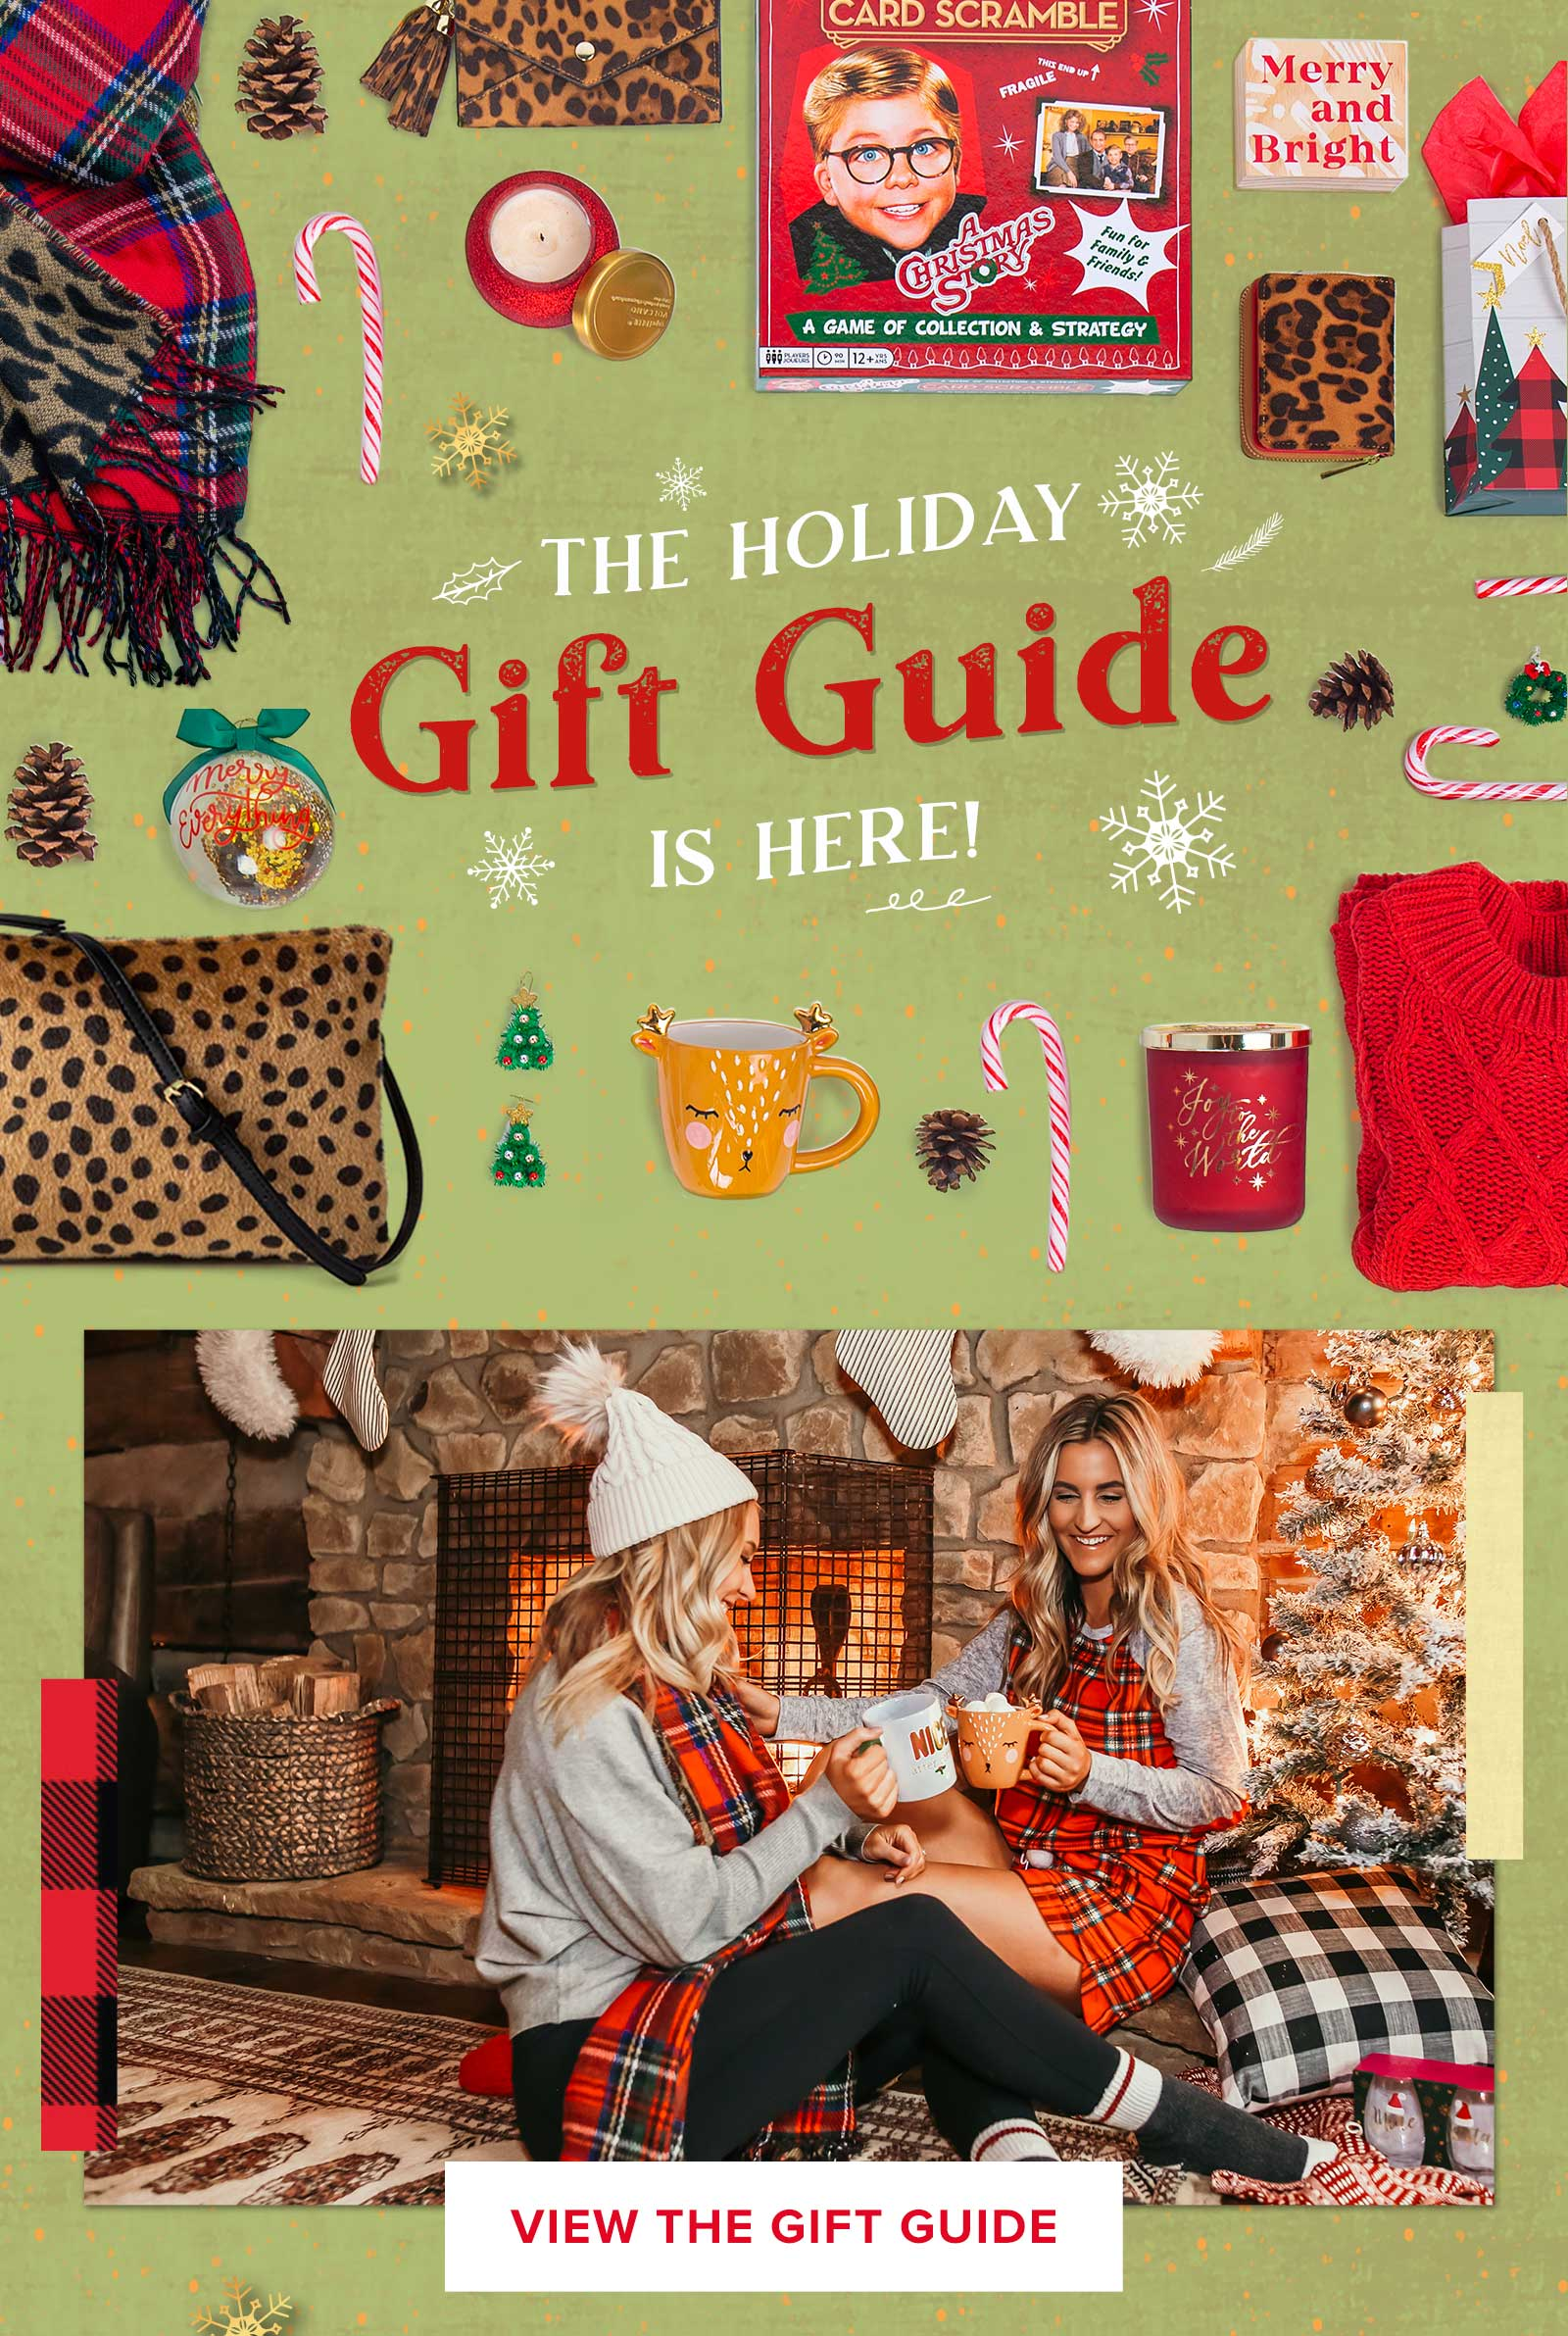 VIEW THE GIFT GUIDE